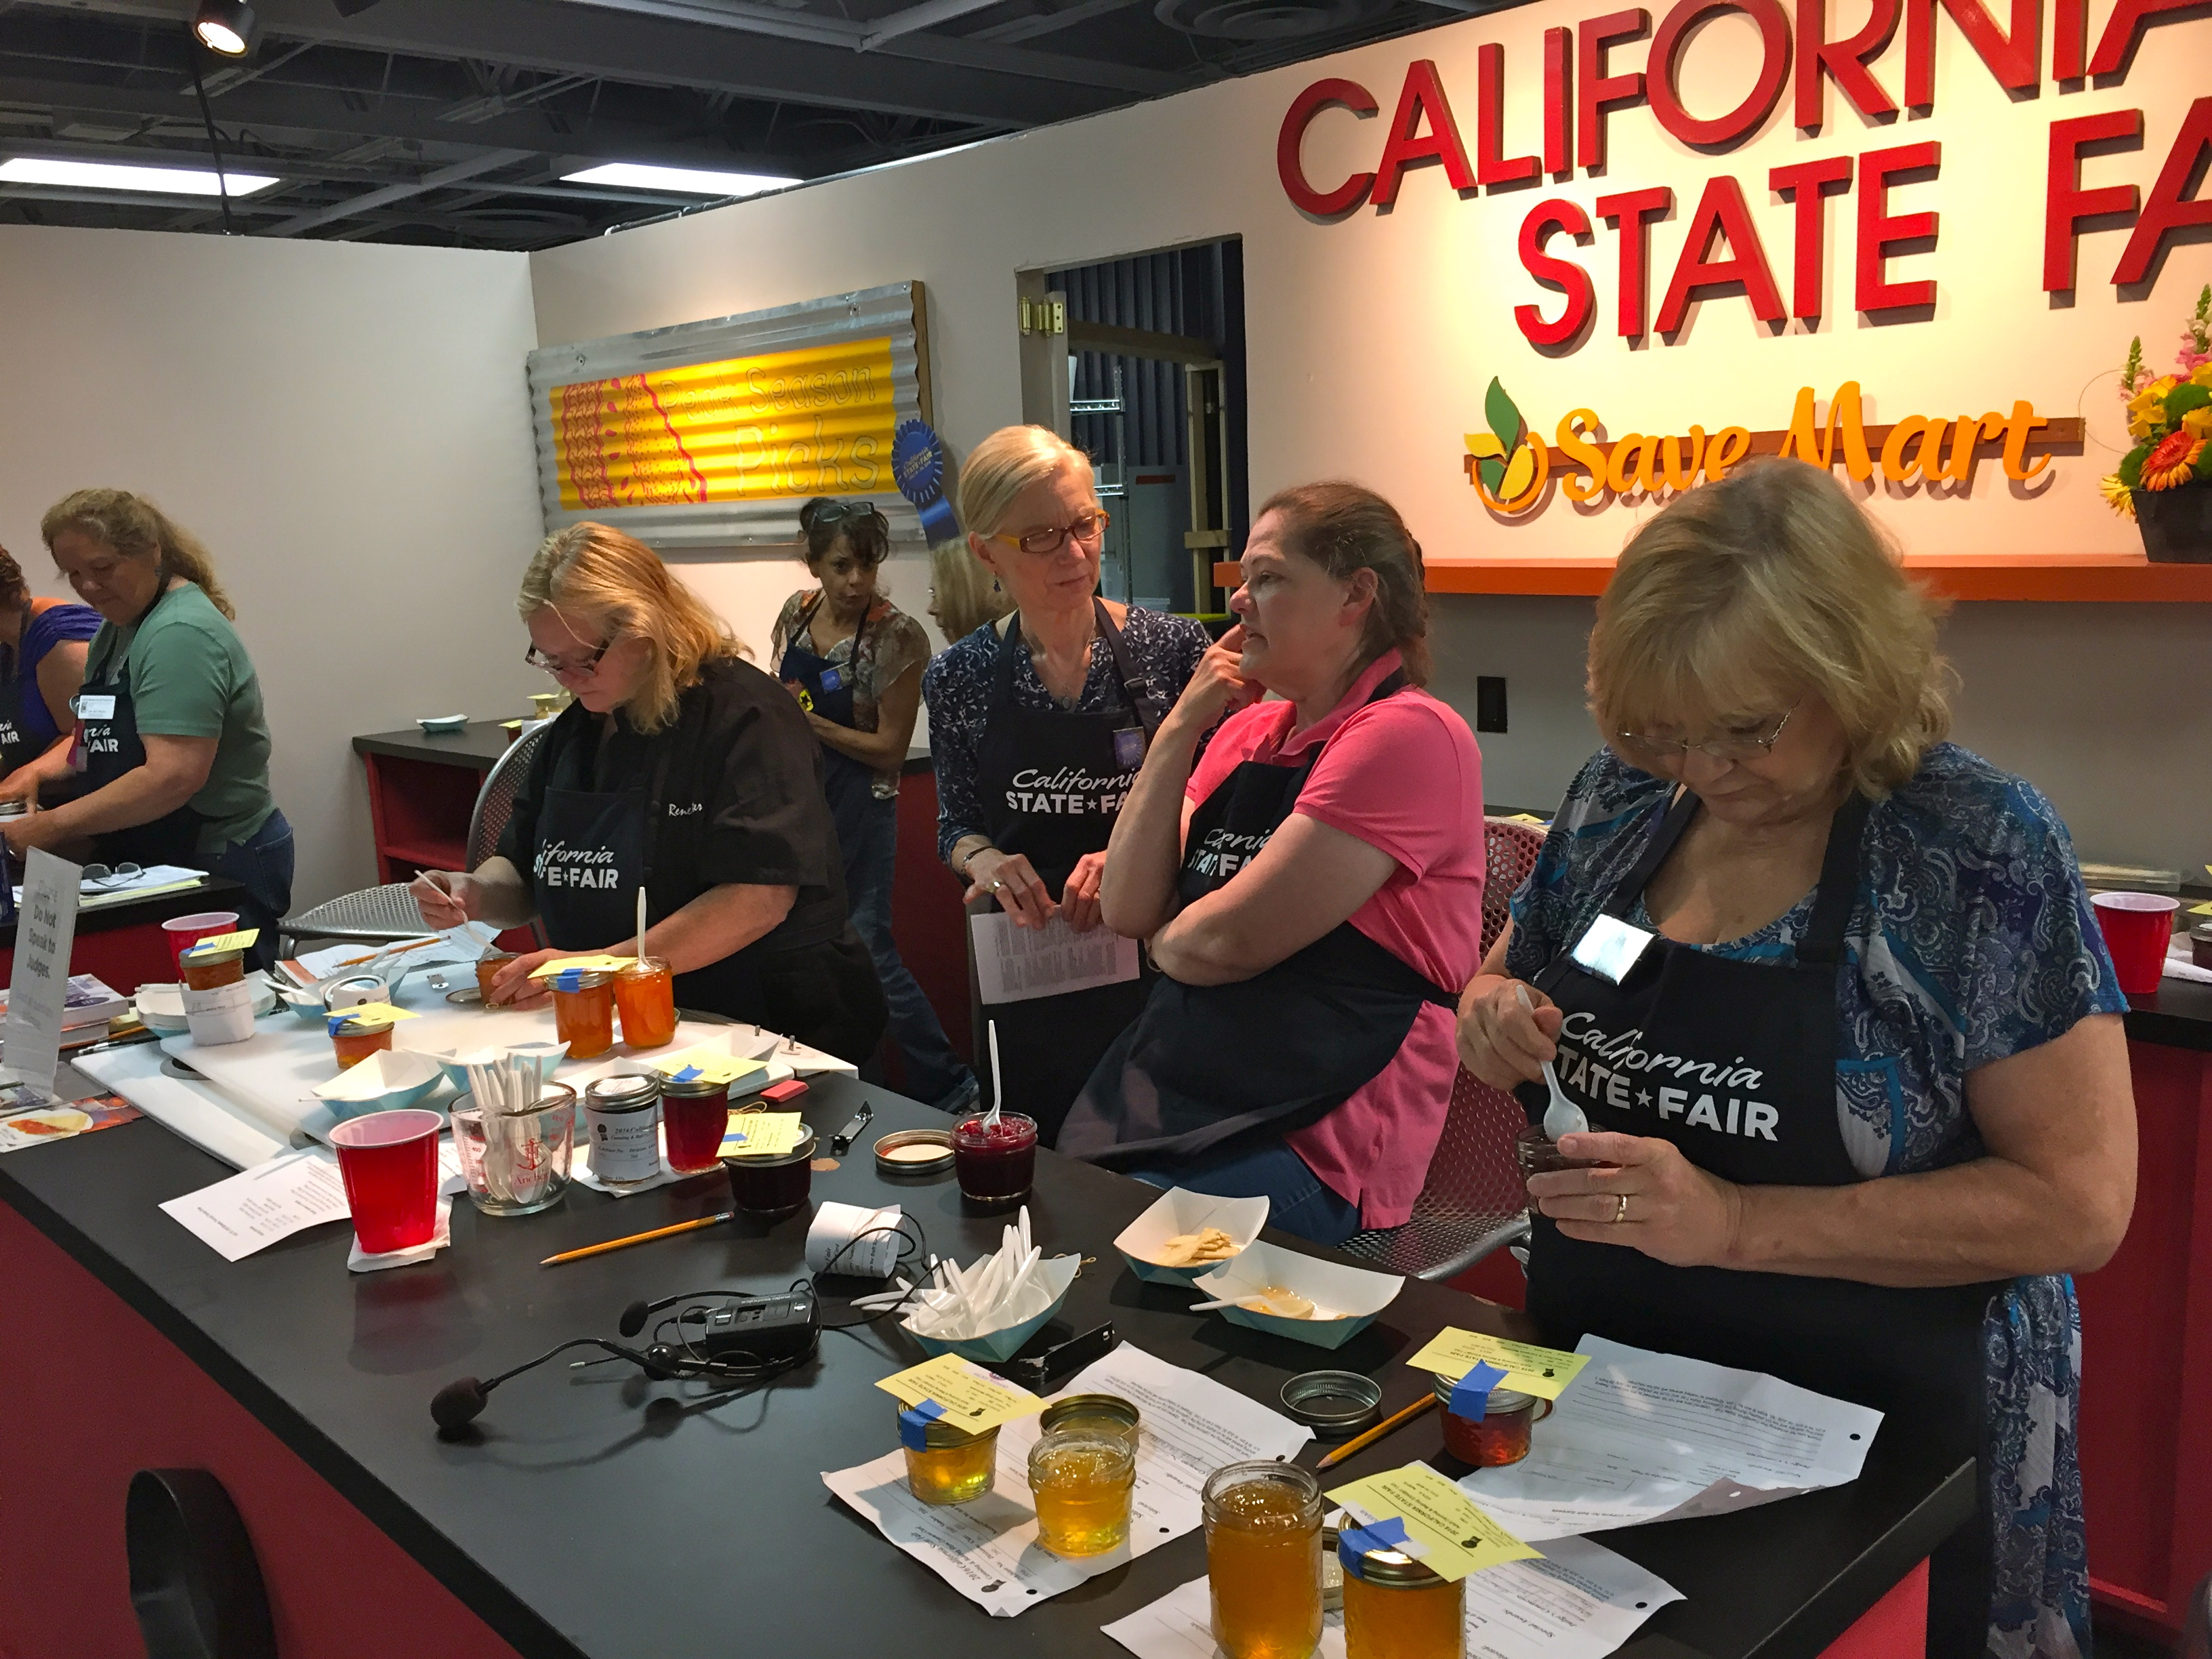 Meet the Marmaladies: East Sac and Land Park neighbors developed unique recipe for the California State Fair